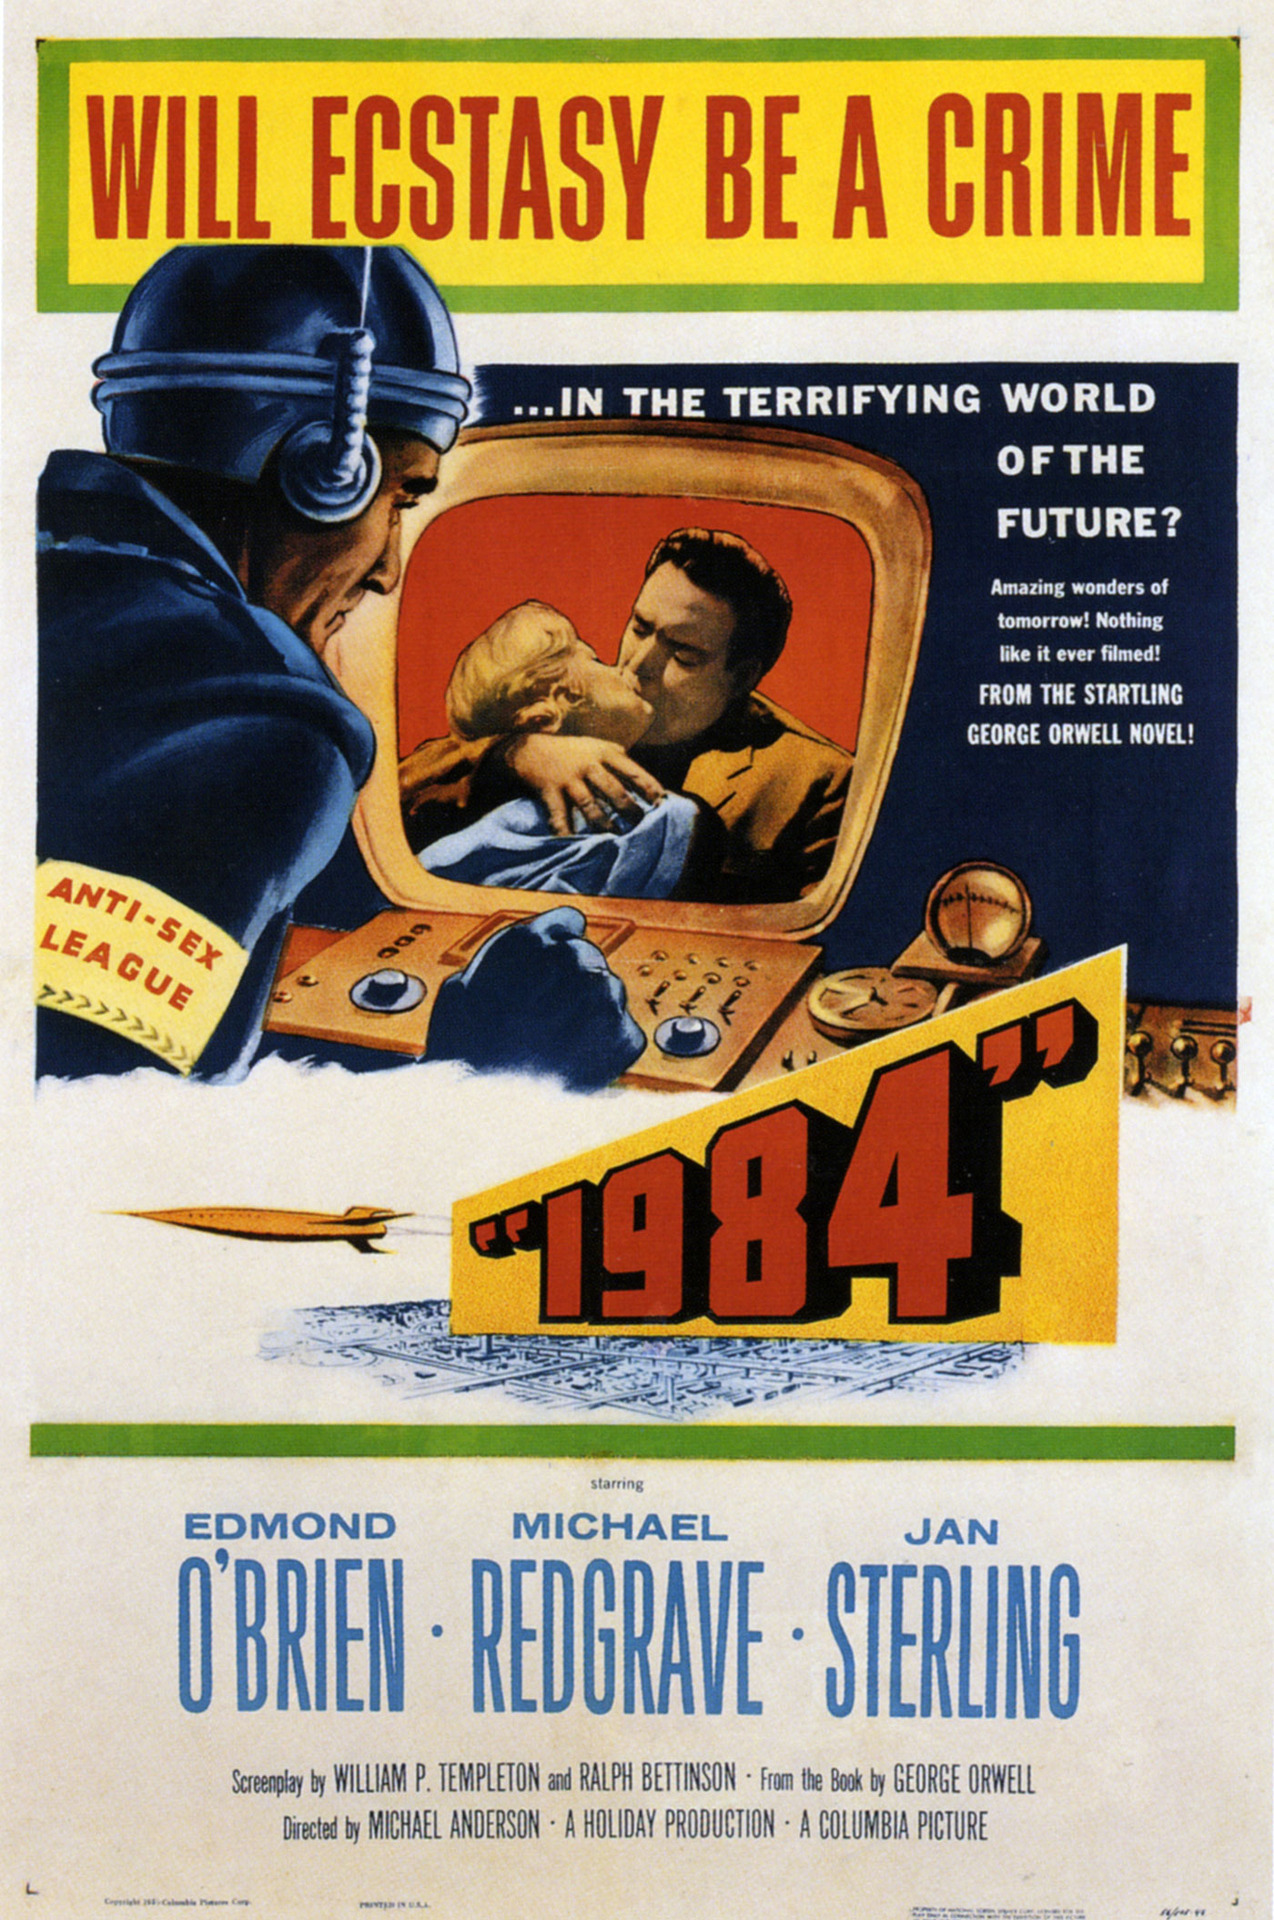 Actual theatrical release poster from 1956 film adaptation of George Orwell's 1984